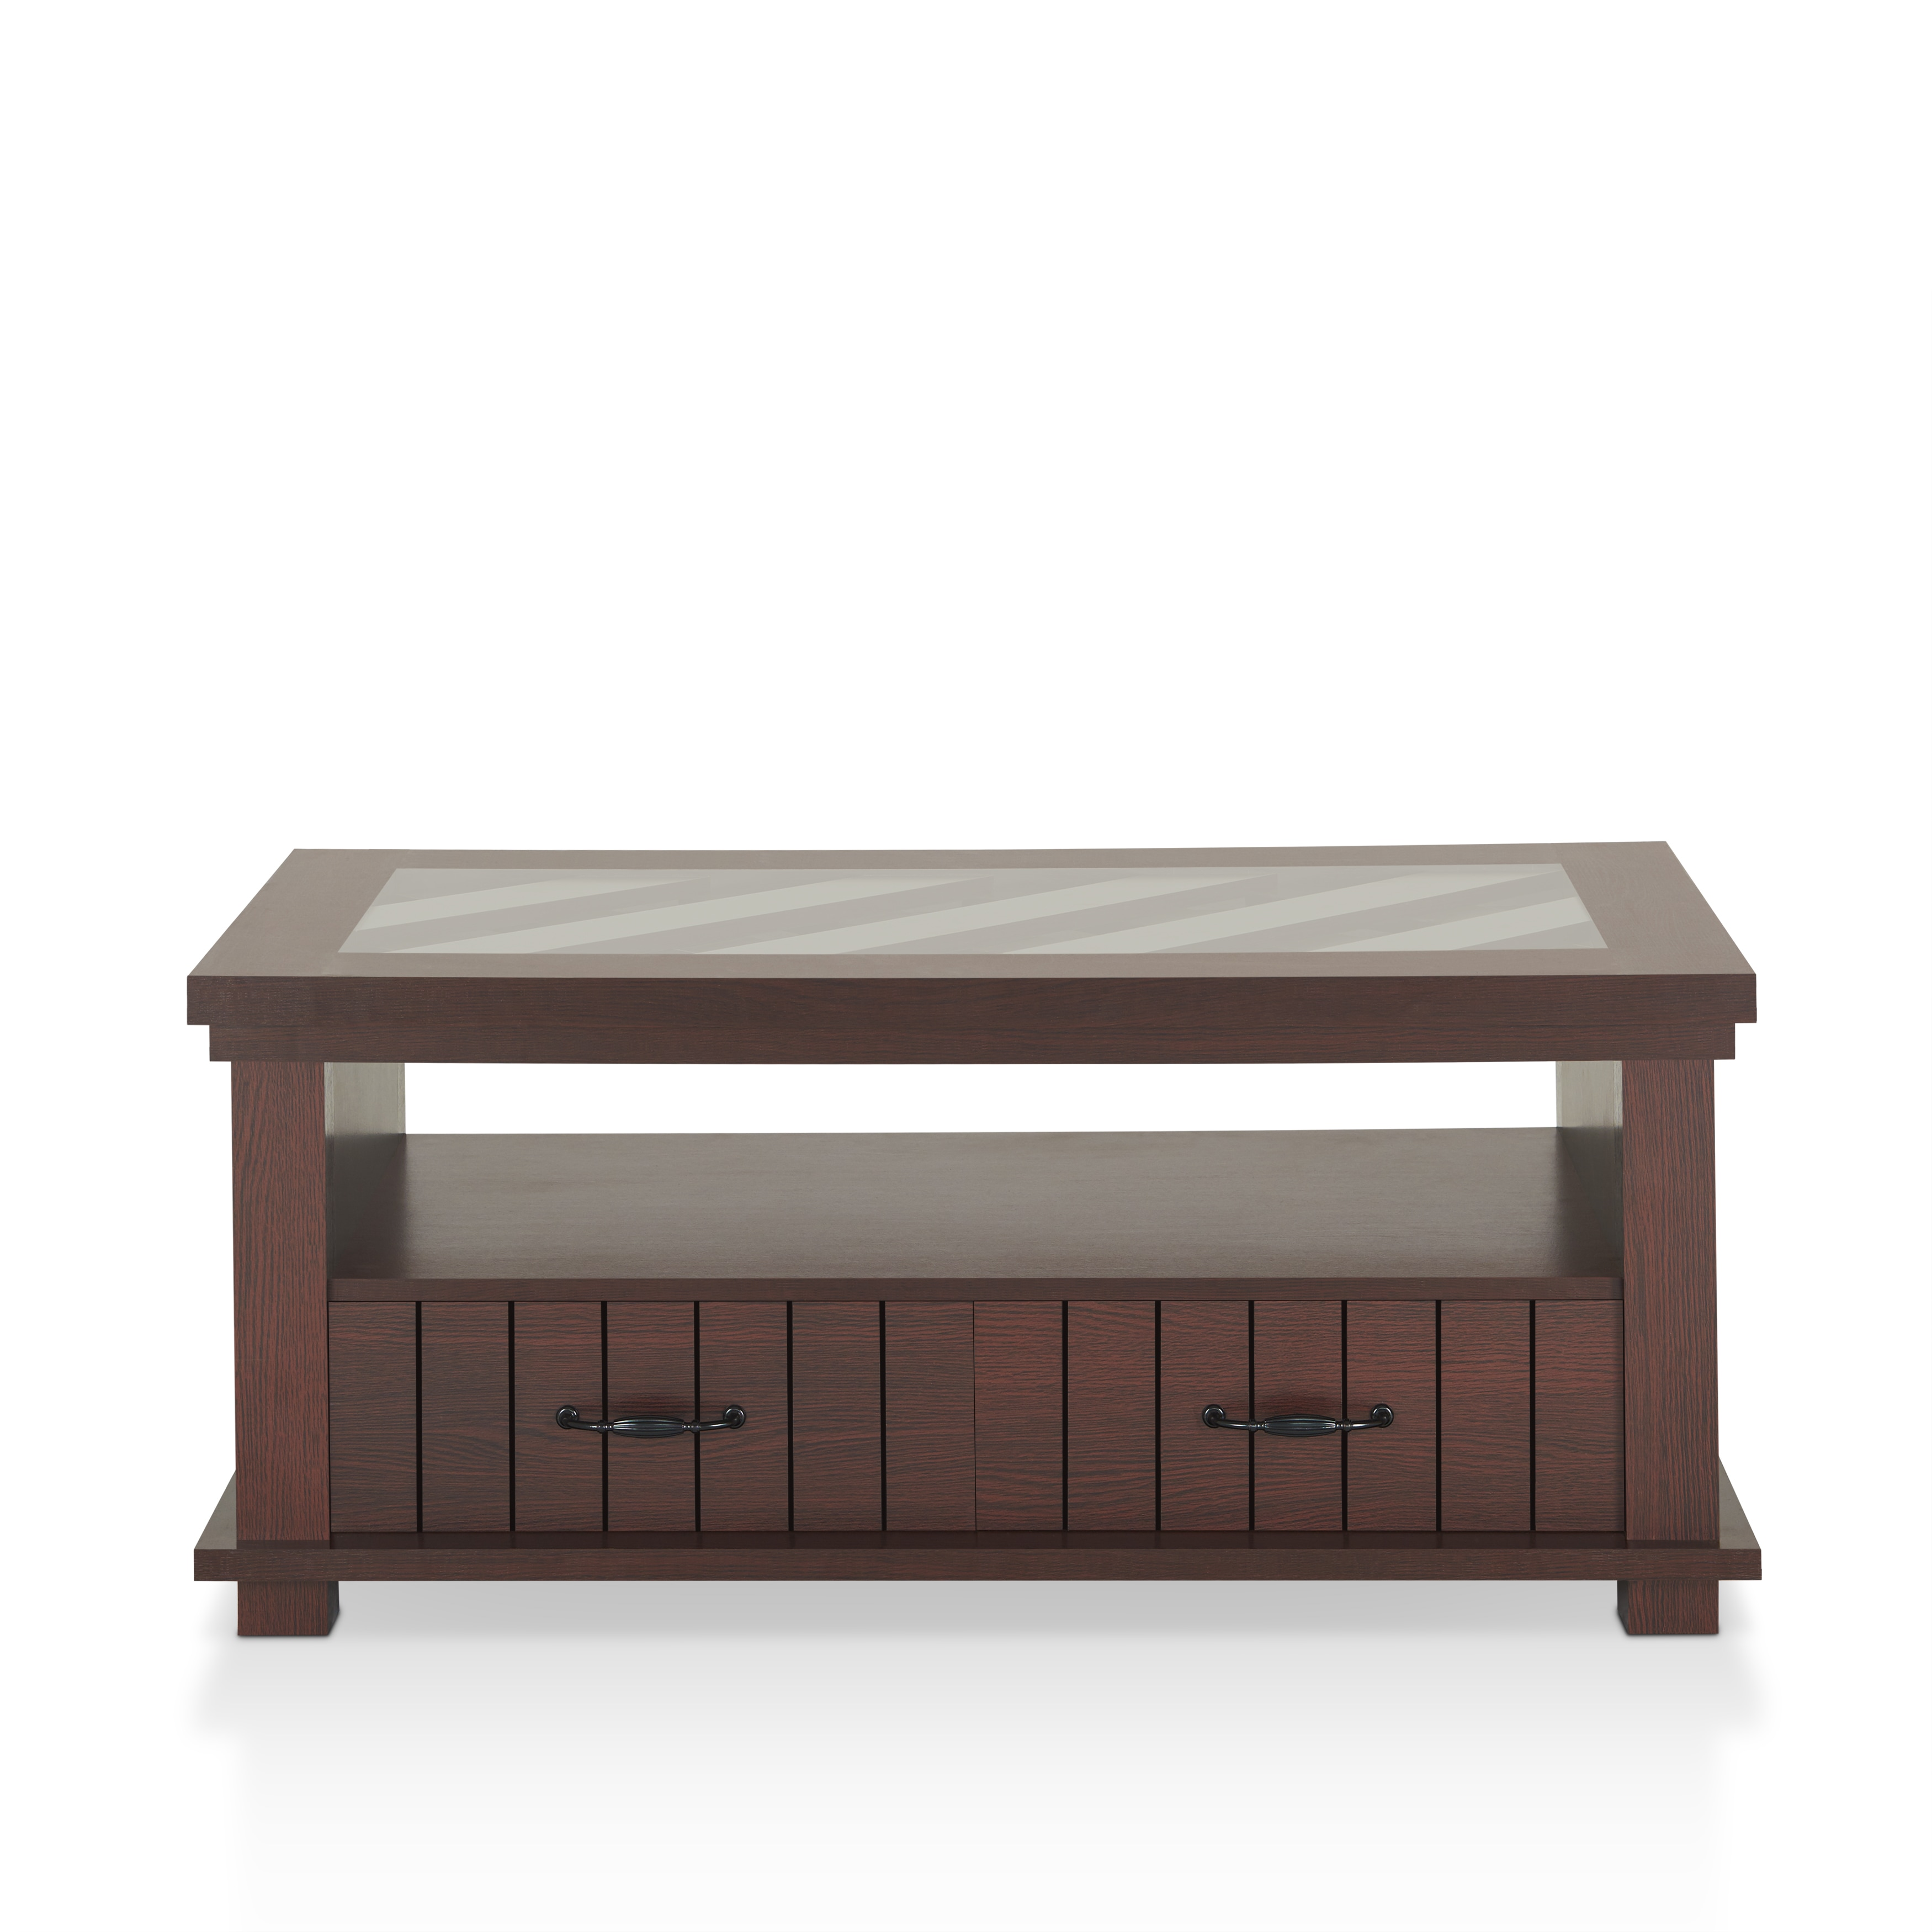 Furniture Of America Cresci Rustic Gl Top 2 Drawer Espresso Coffee Table On Free Shipping Today 14634171